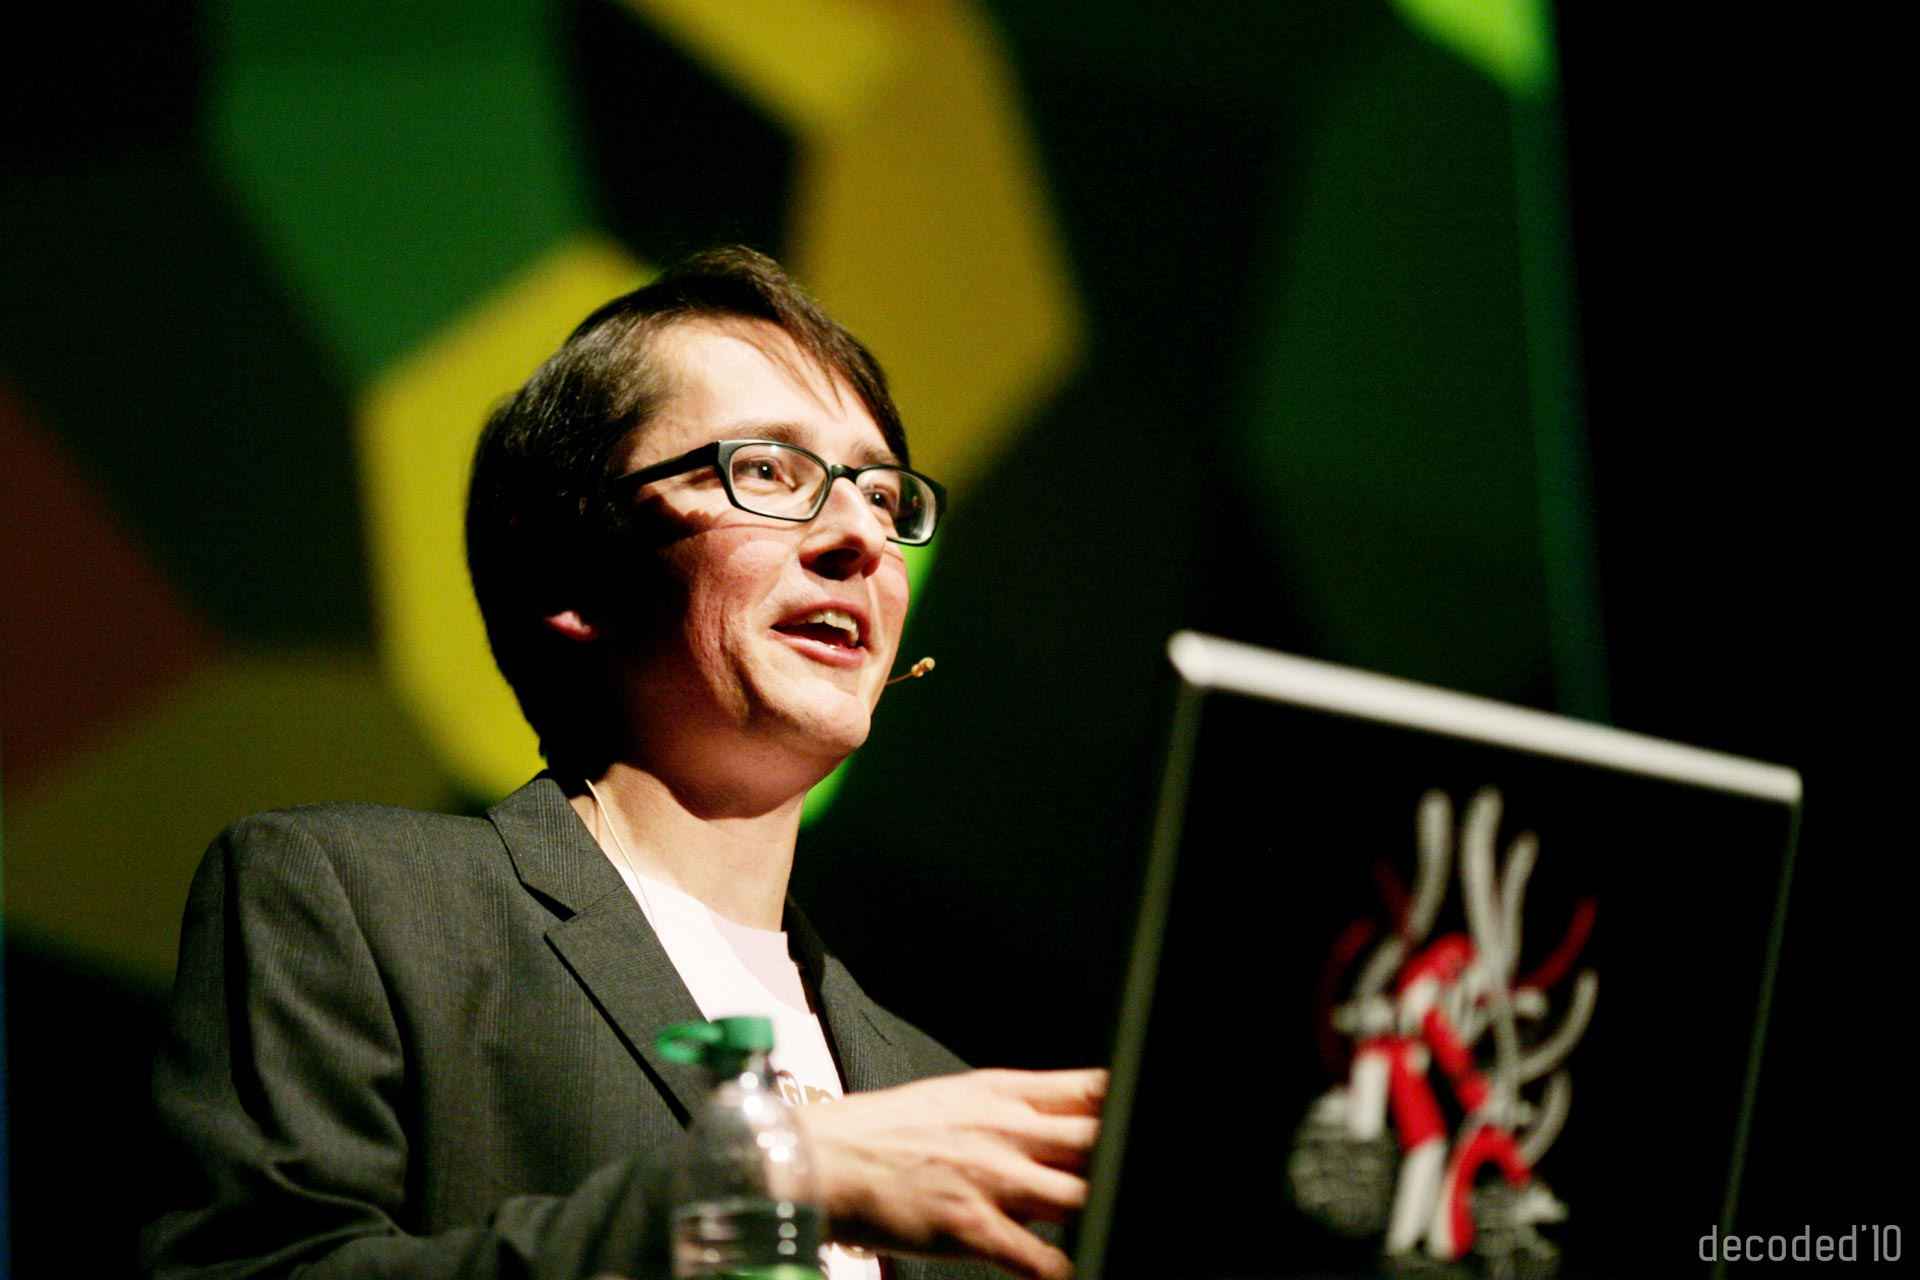 Mario Klingemann bei der Decoded Conference 2010 in München   Foto: Wikimedia Commons/decoded conference